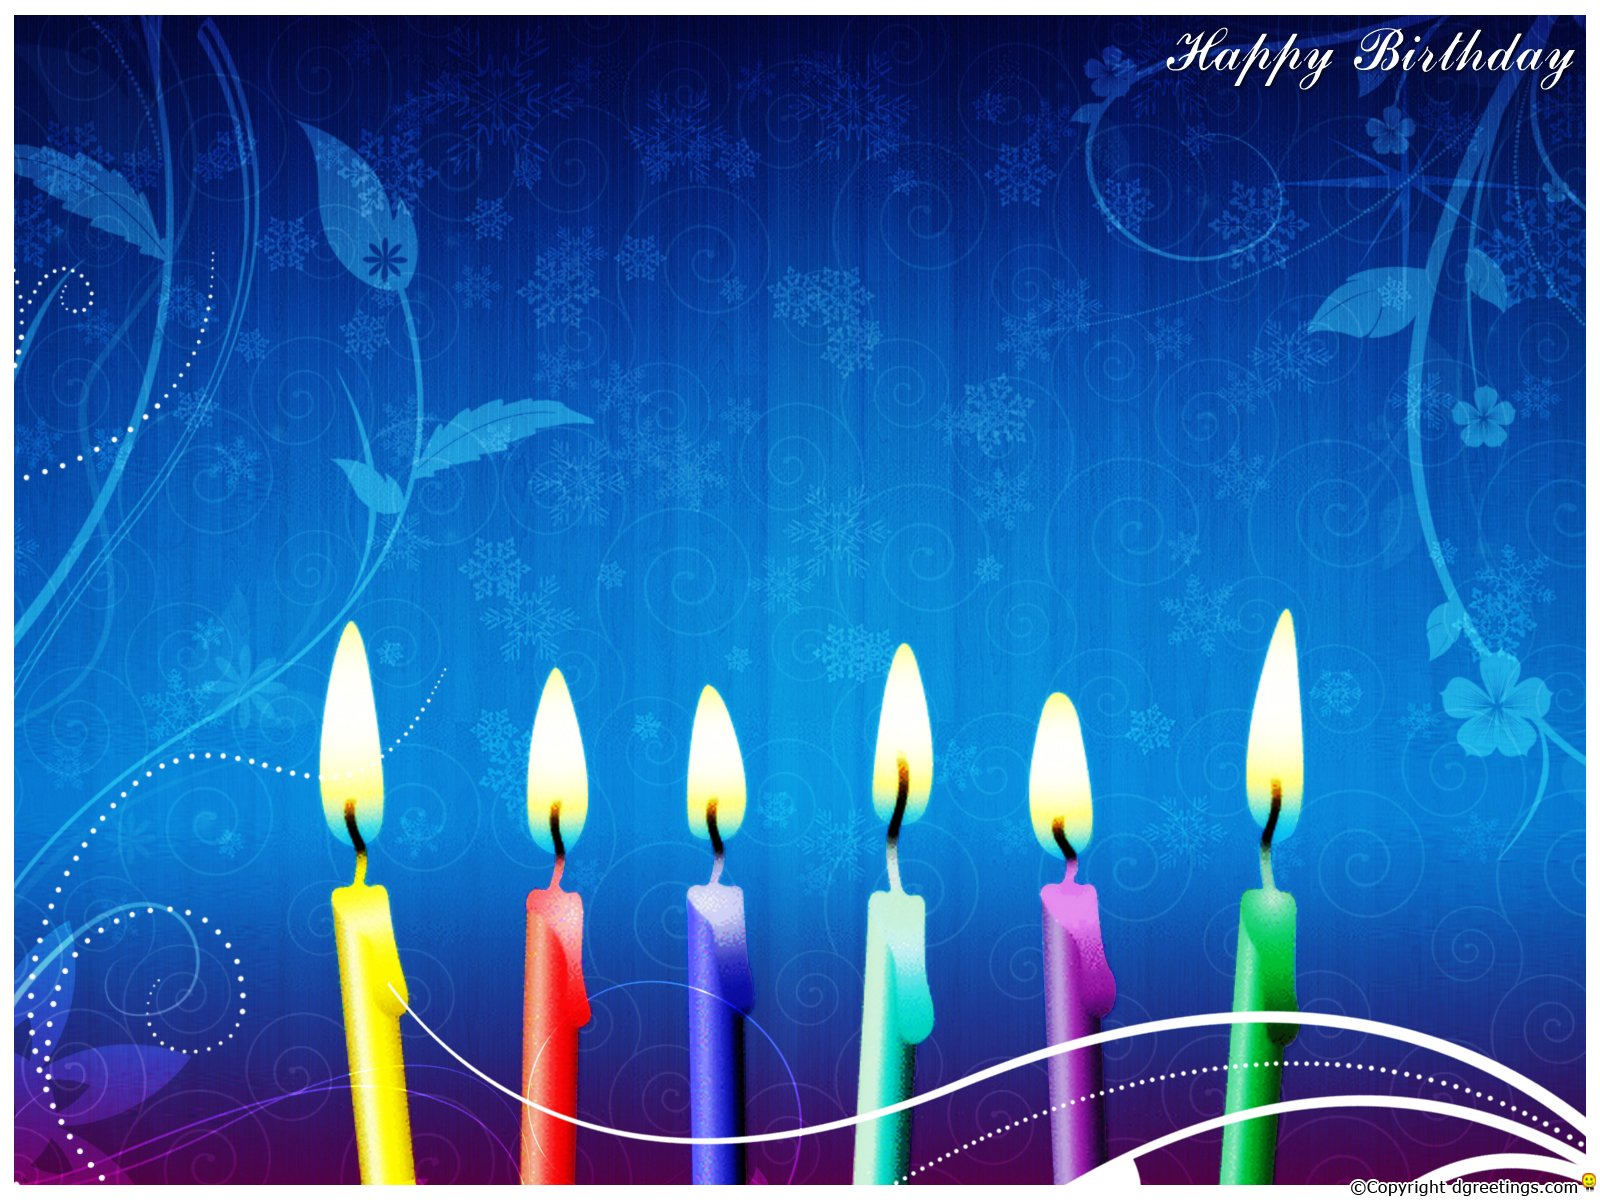 73 birthday hd wallpapers | backgrounds - wallpaper abyss - page 2